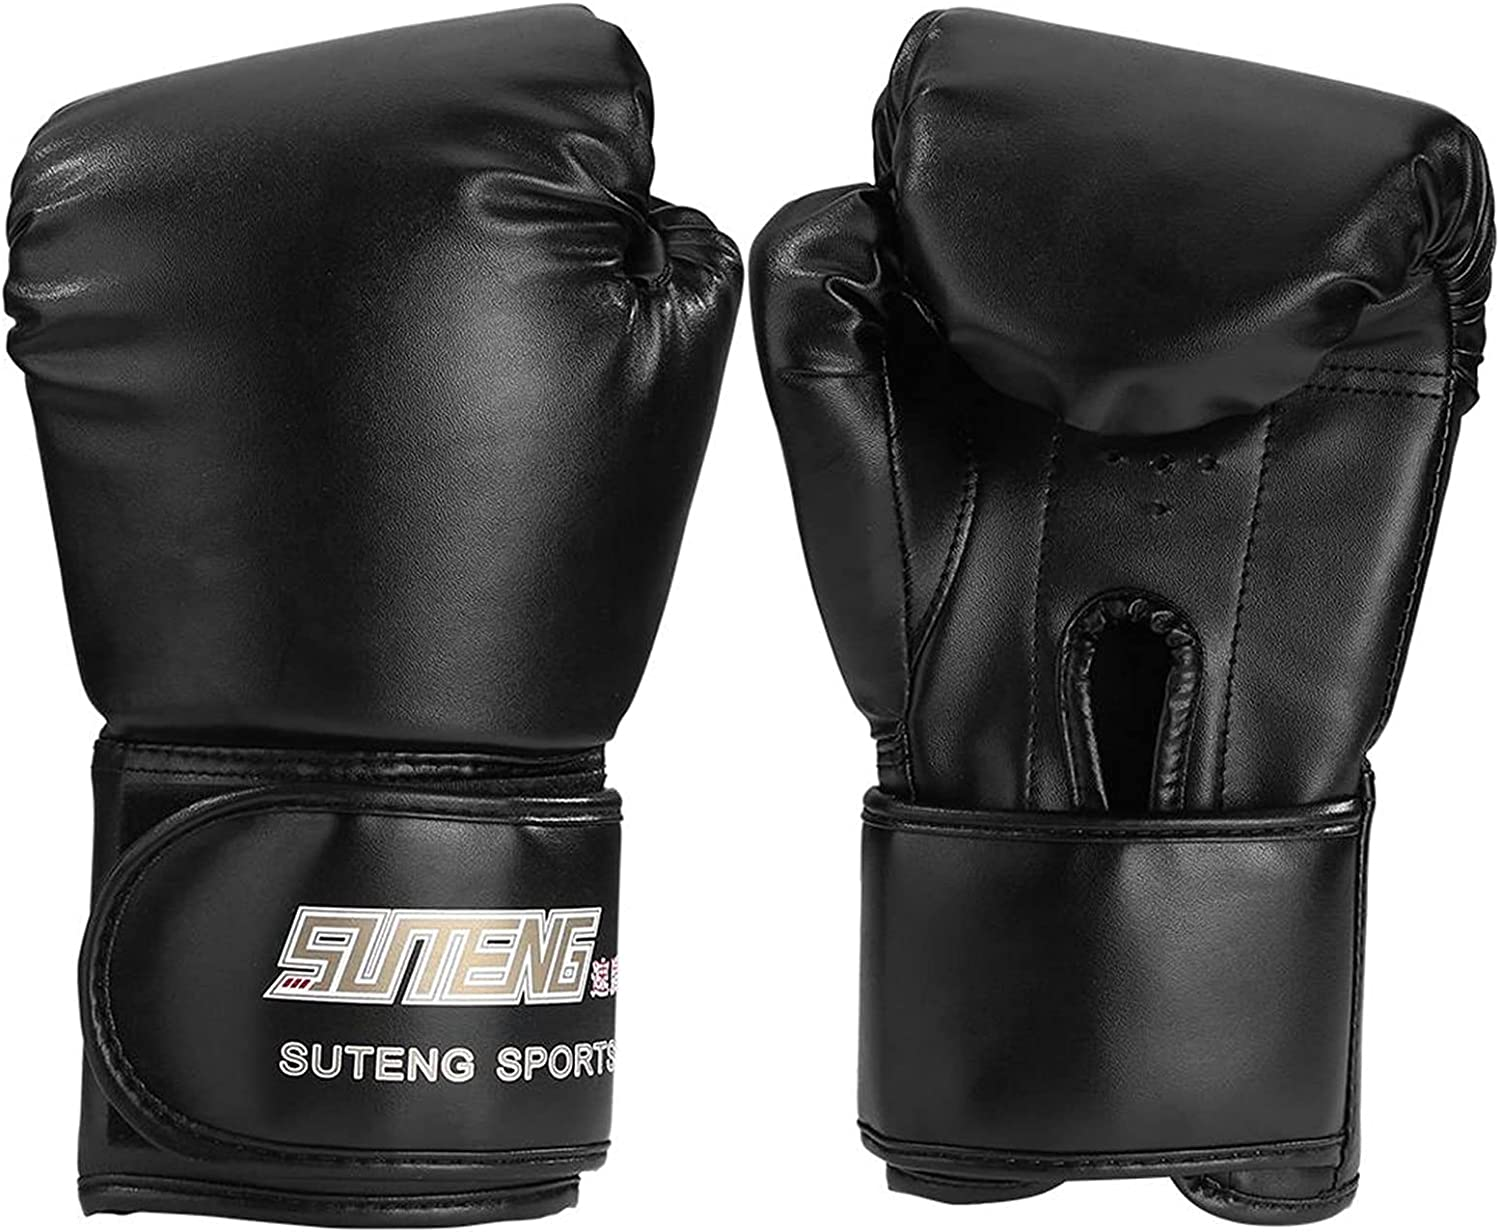 JINSHANDIANLIAO 1Pair Max 68% Manufacturer regenerated product OFF Adults Kick Boxing Sanda Gloves F Training